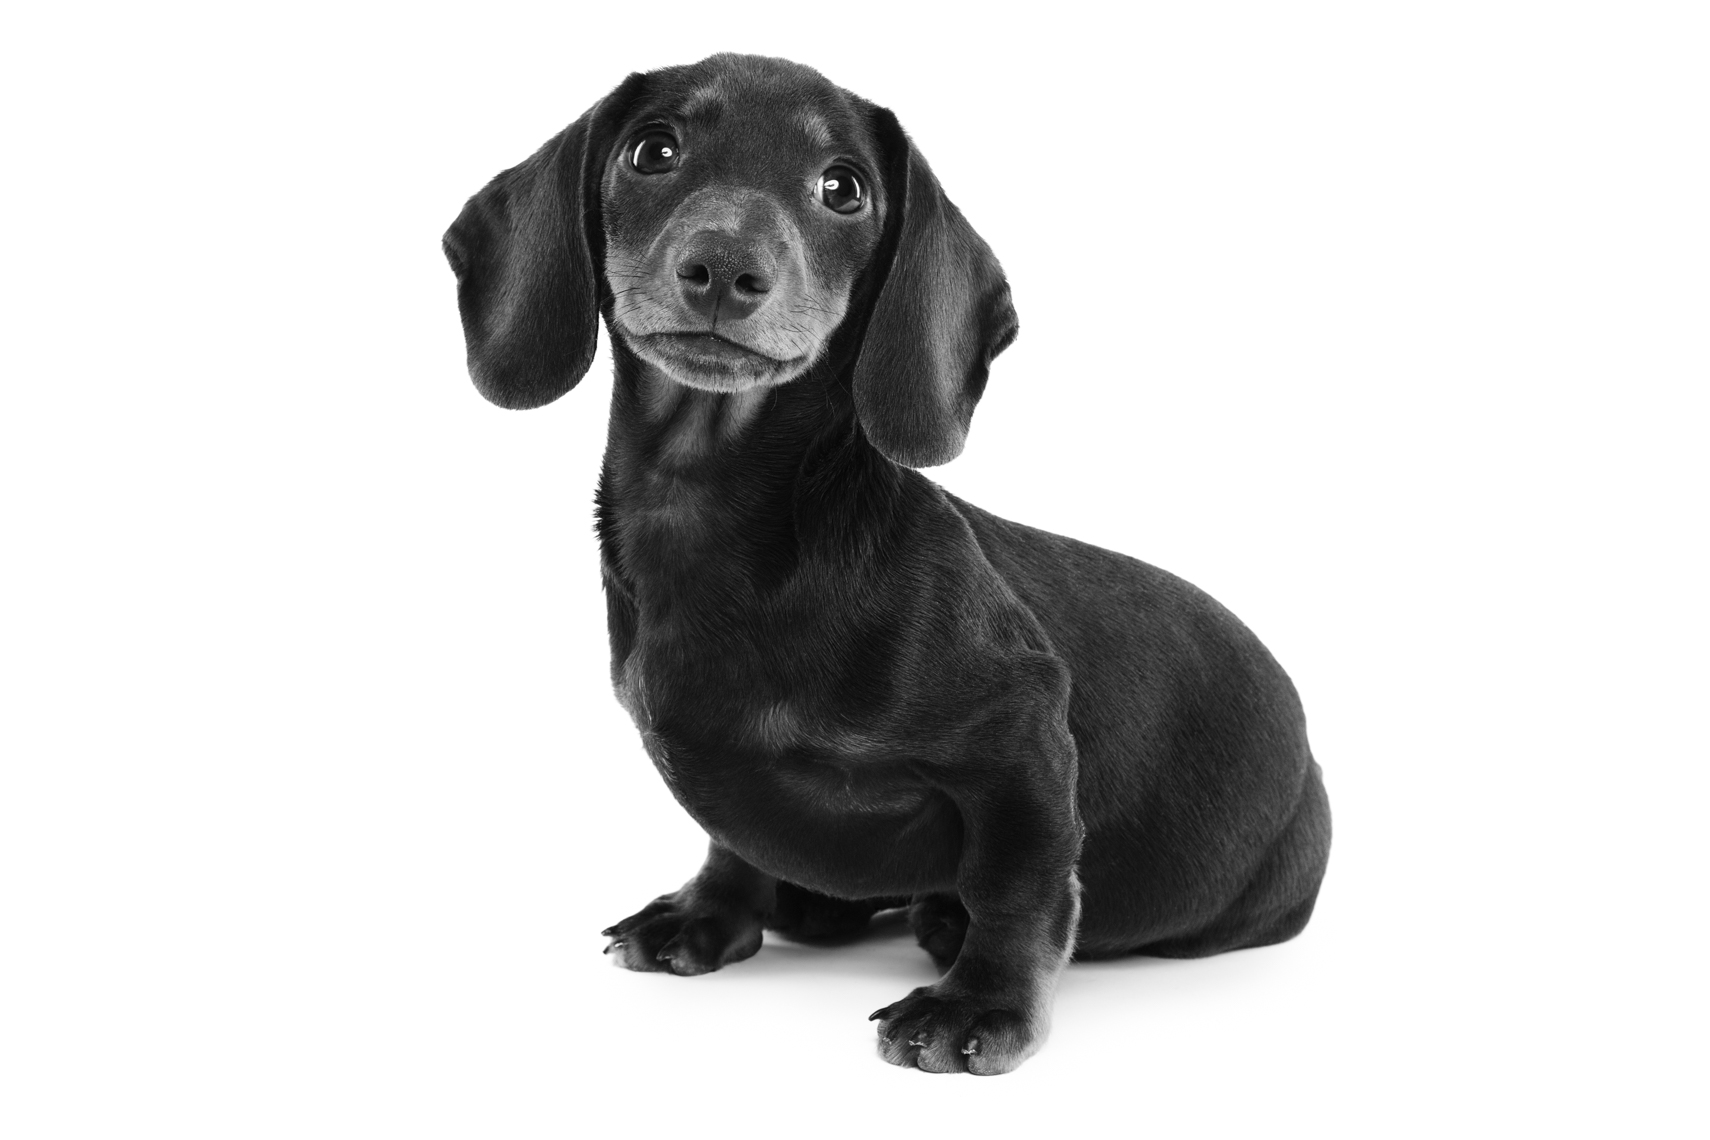 Black and White portrait of a dachshund